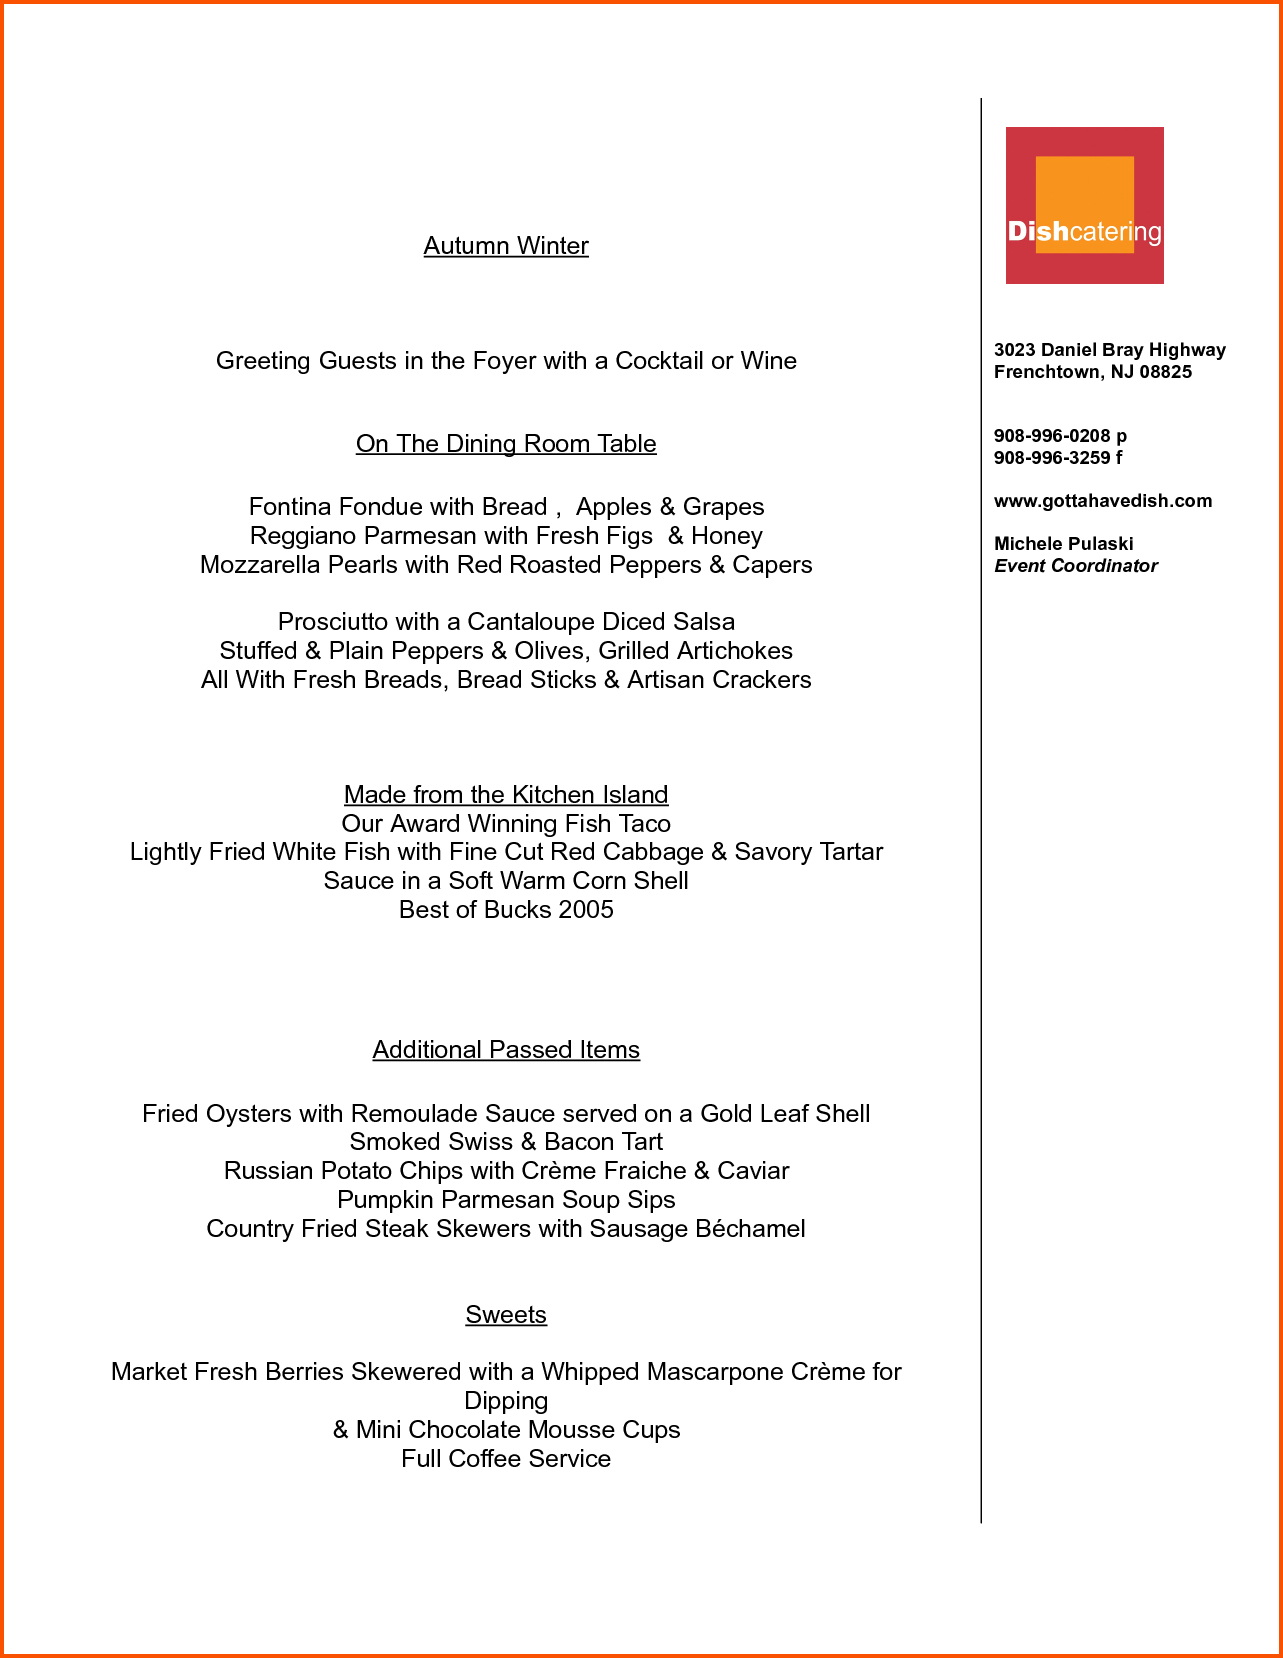 046 Cocktail Menu Template Word Free For Exceptional Ideas With Regard To Cocktail Menu Template Word Free